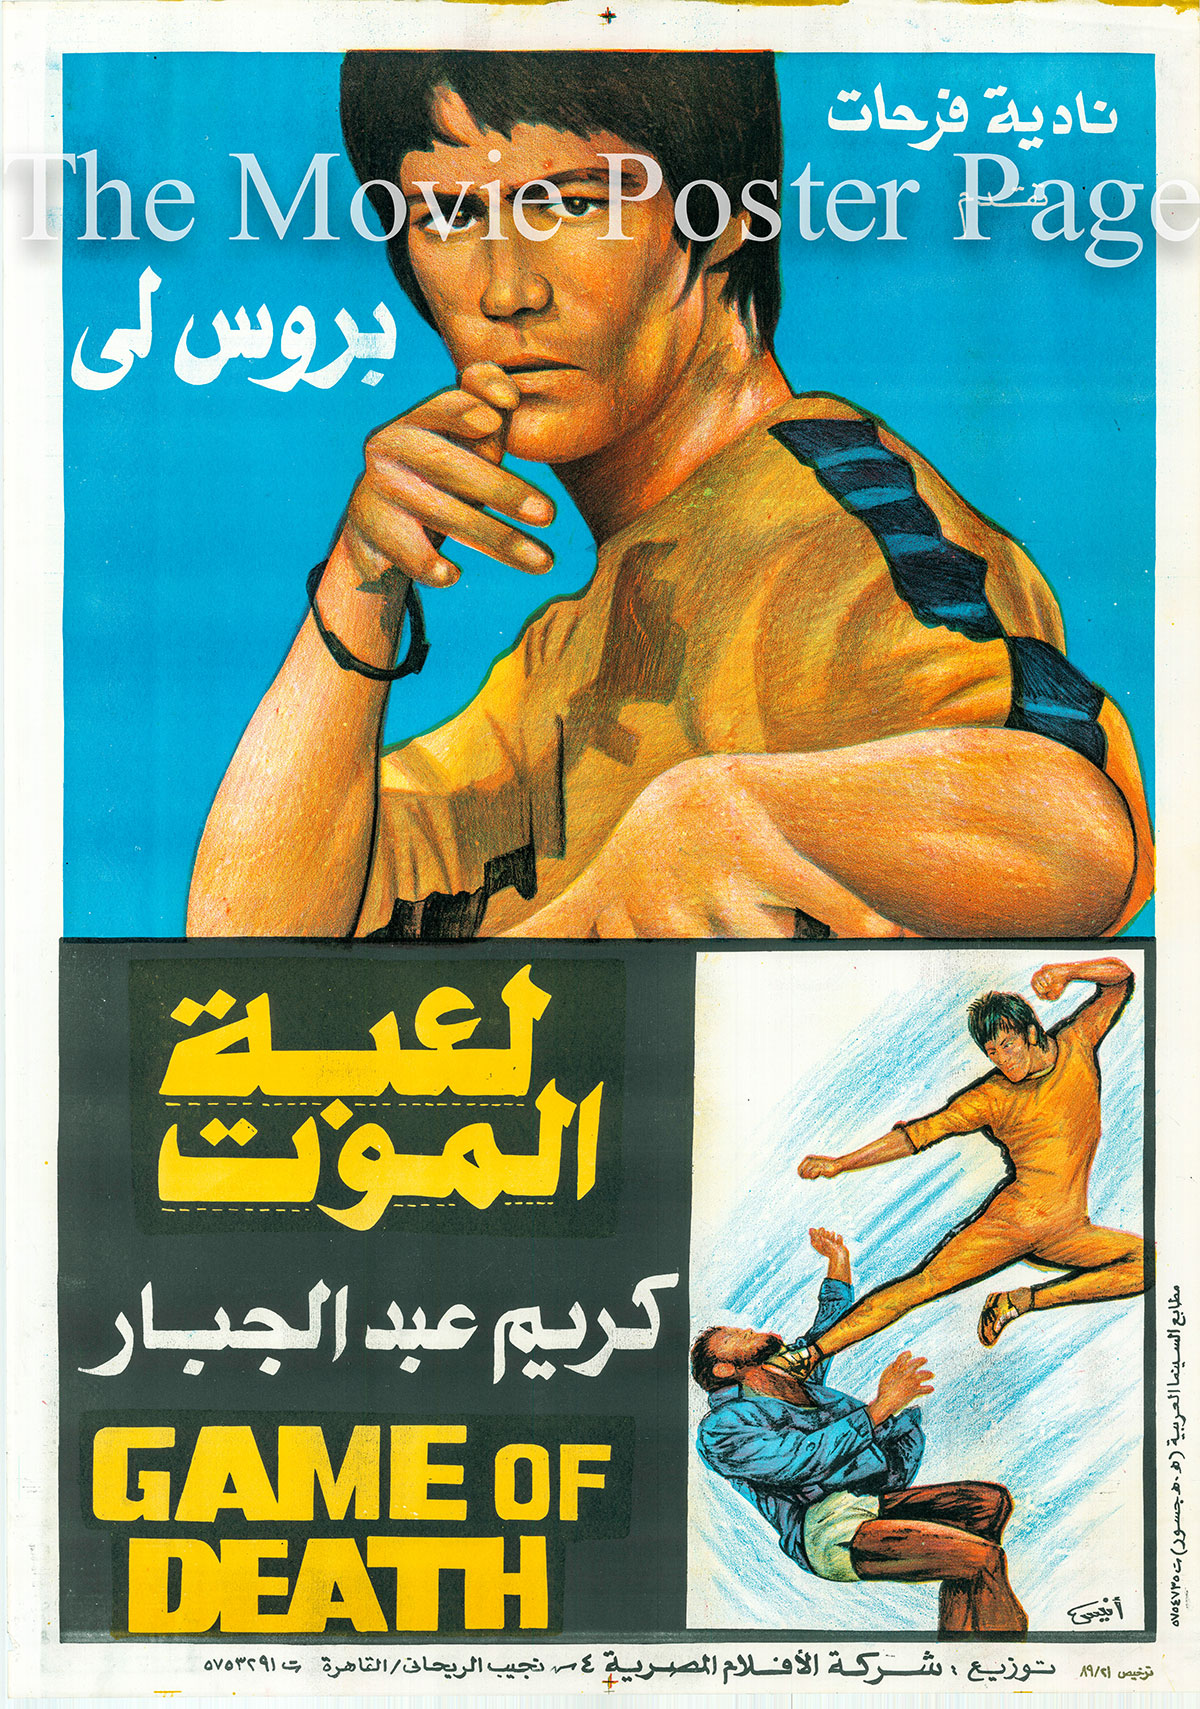 Pictured is an Egyptian promotional poster for a 1983 rerelease of the 1978 Robert Clouse film Game of Death starring Bruce Lee.